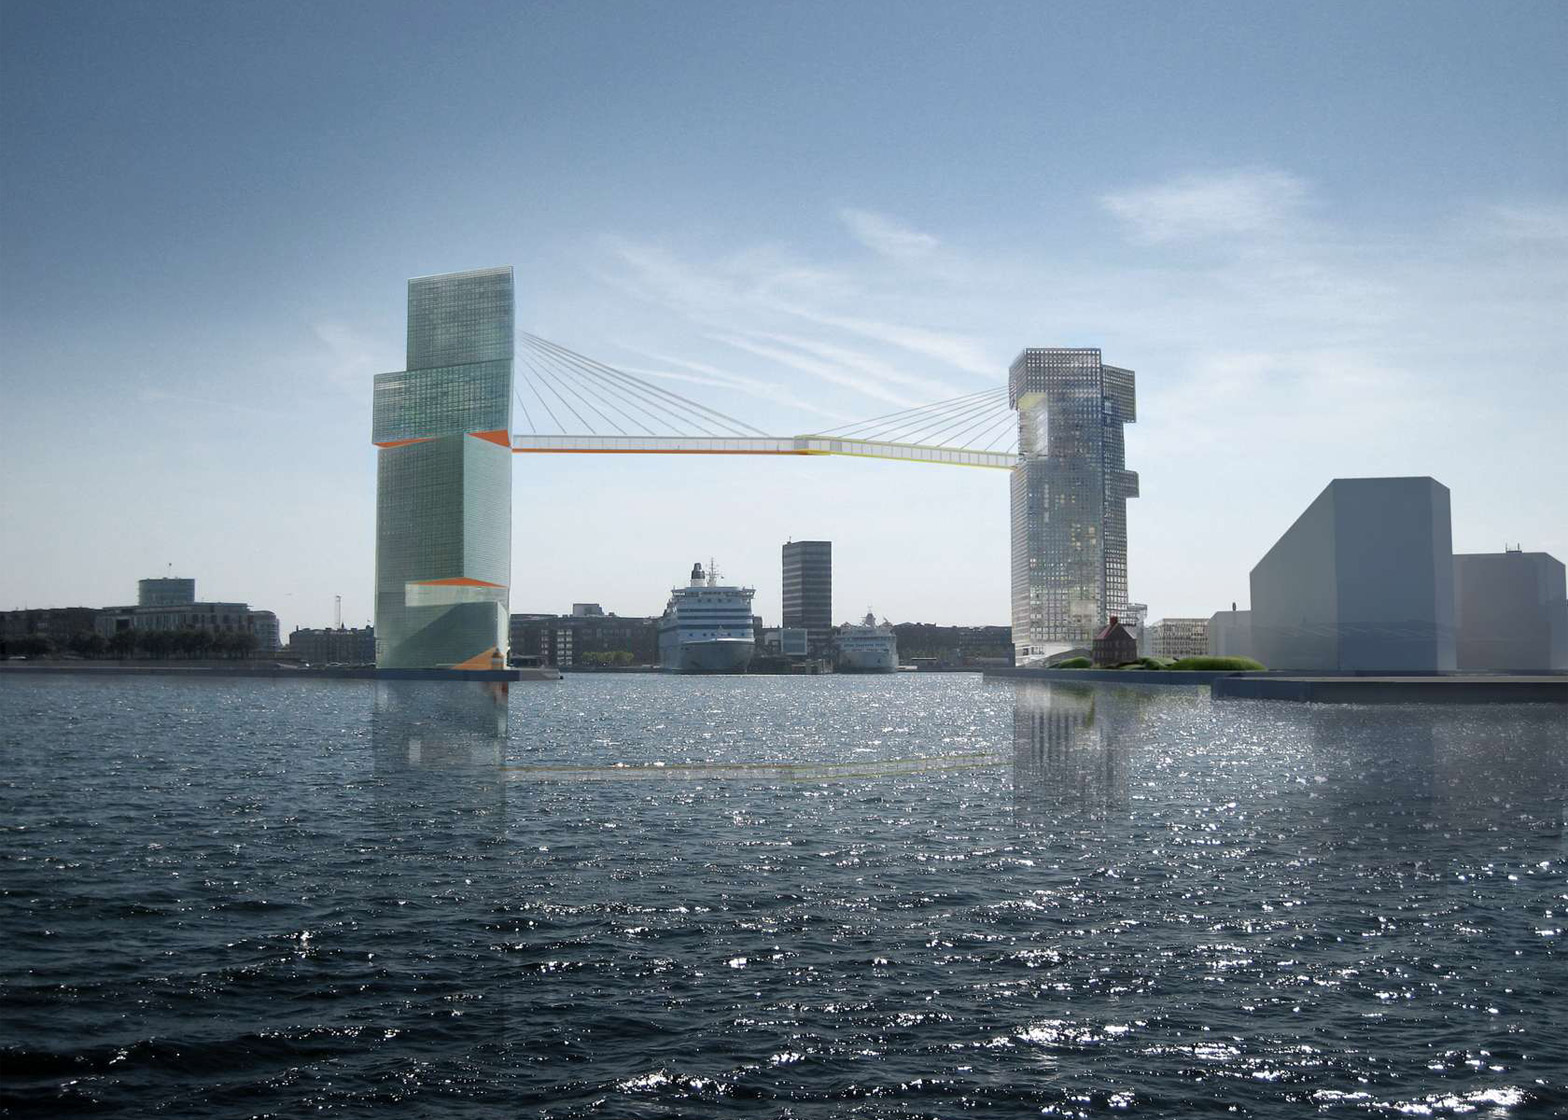 The proposed Copenhagen Gate